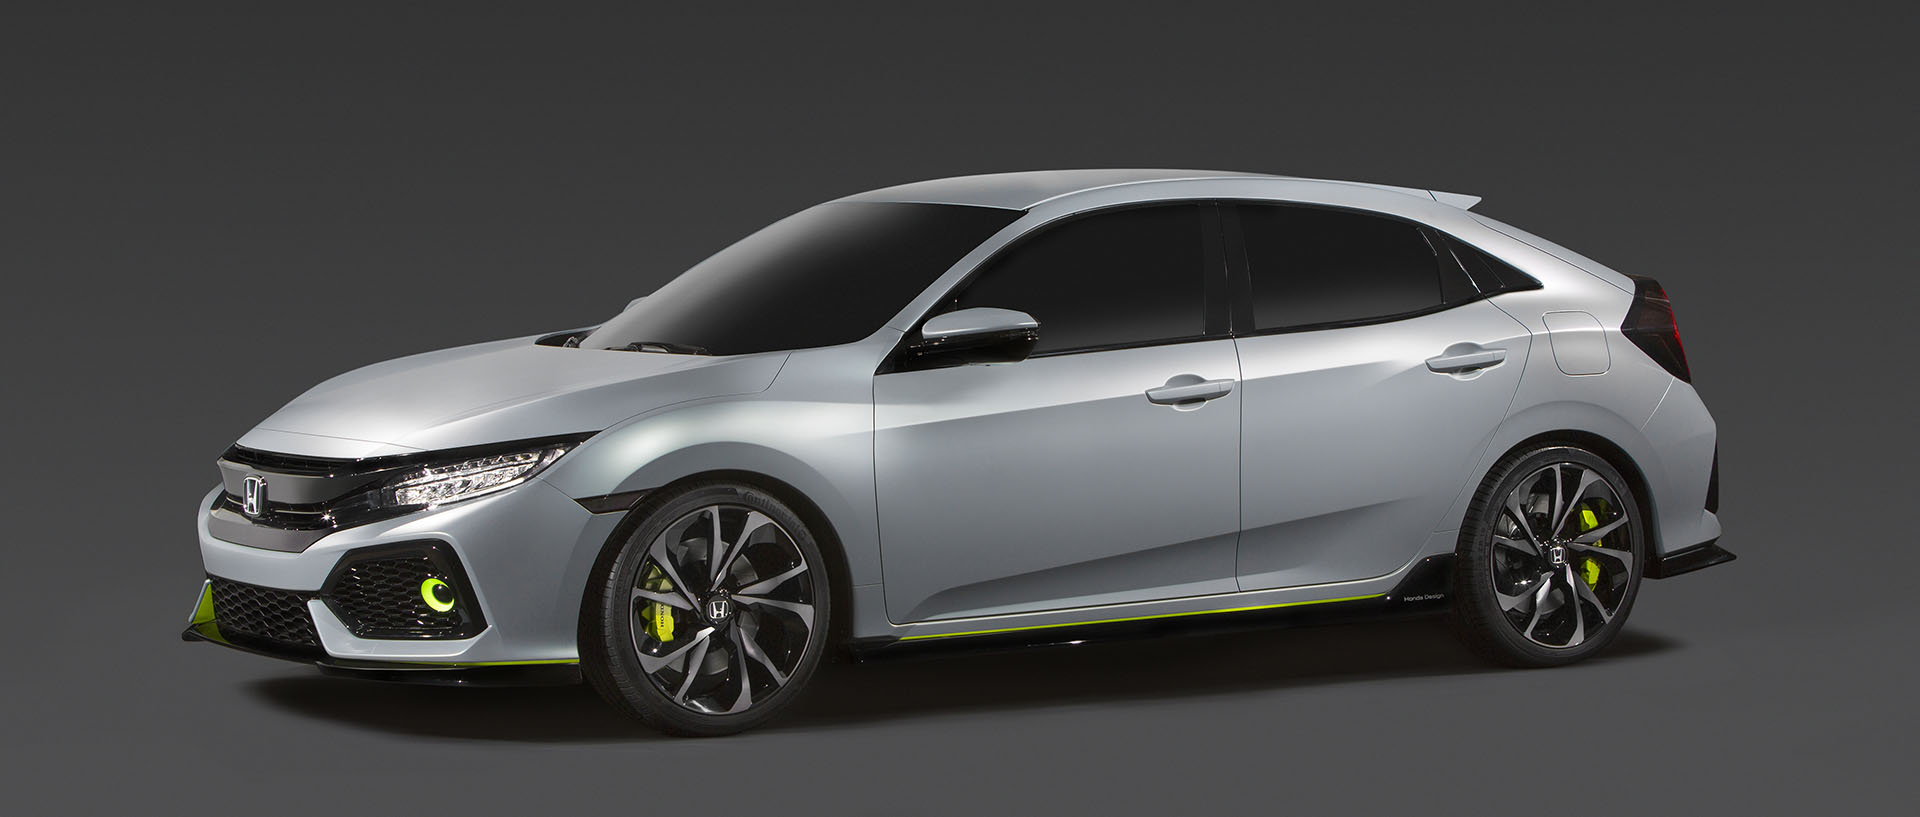 2017 Honda Civic Hatchback Joins Coupe And Sedan